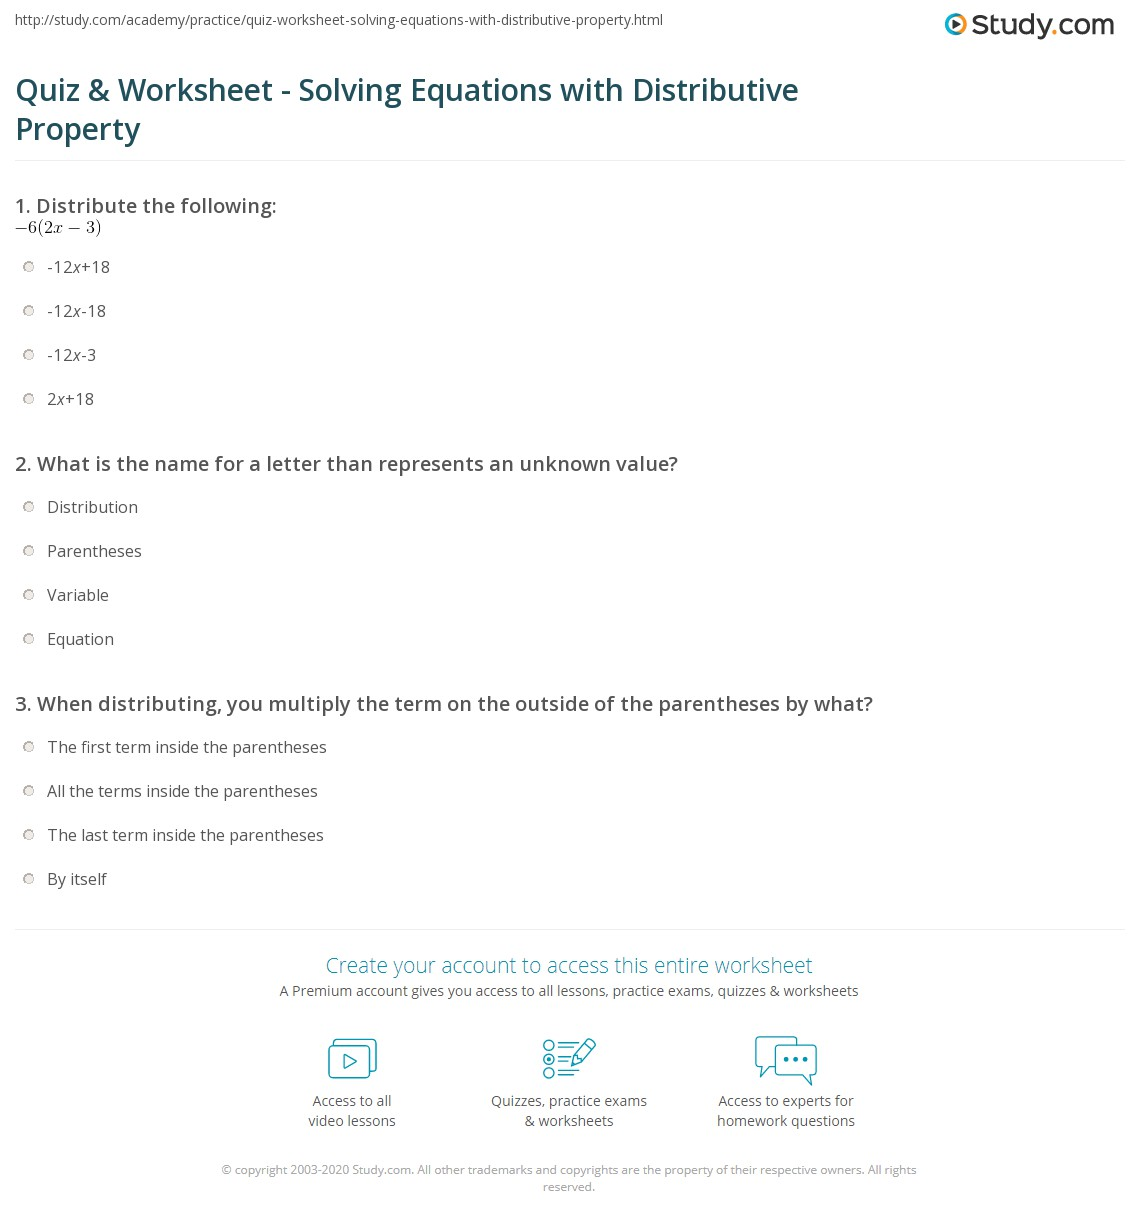 Quiz Worksheet Solving Equations with Distributive Property – Solving Equations with Distributive Property Worksheet